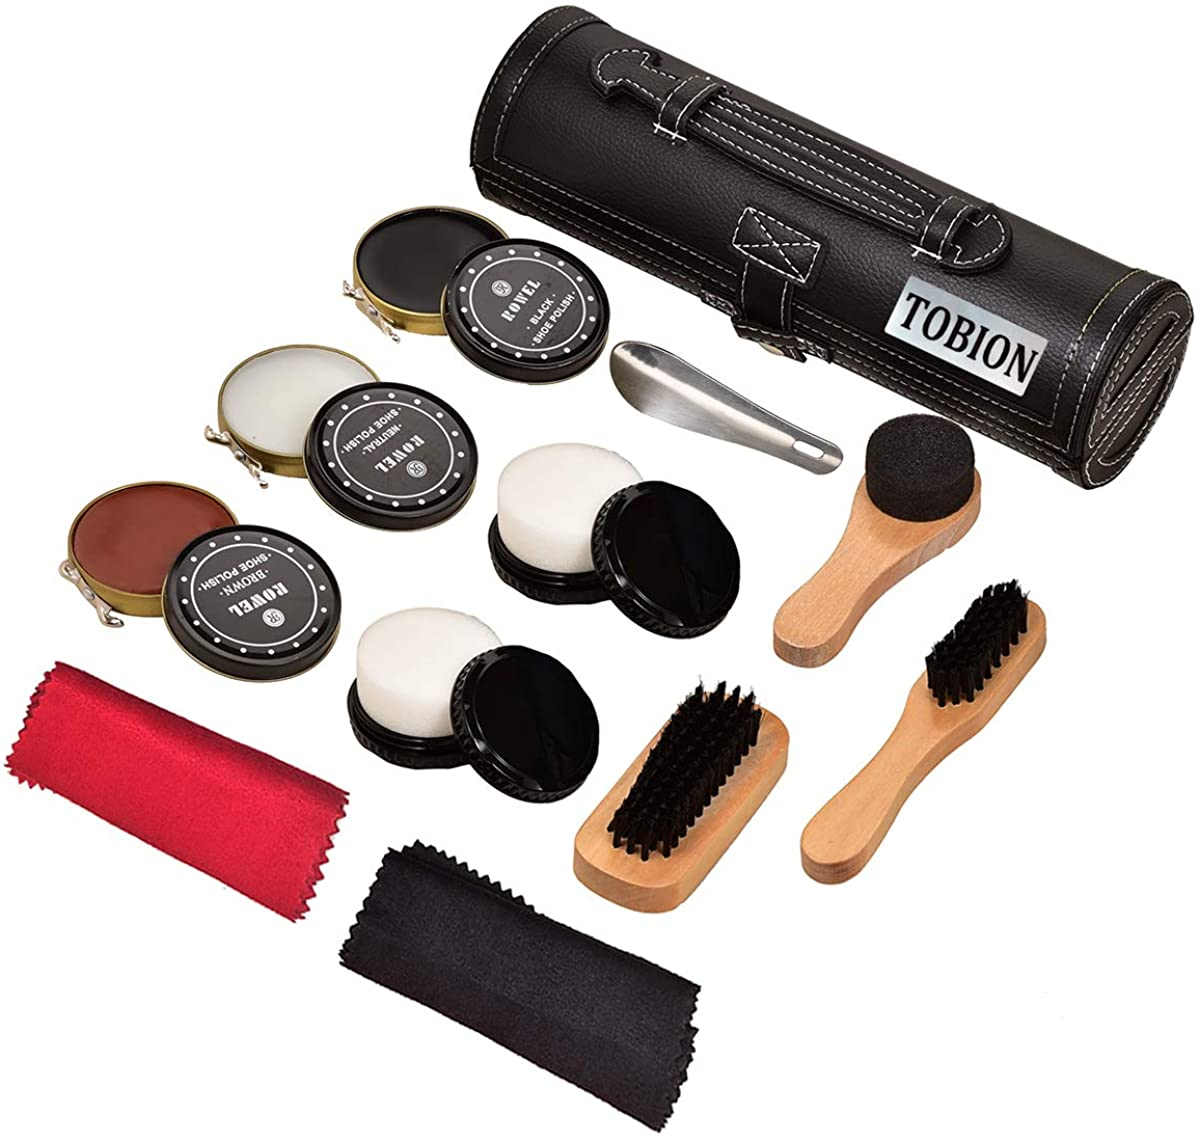 Shoe Shine Brush Kit Shoe Care Kit with PU Leather Sleek Elegant Case